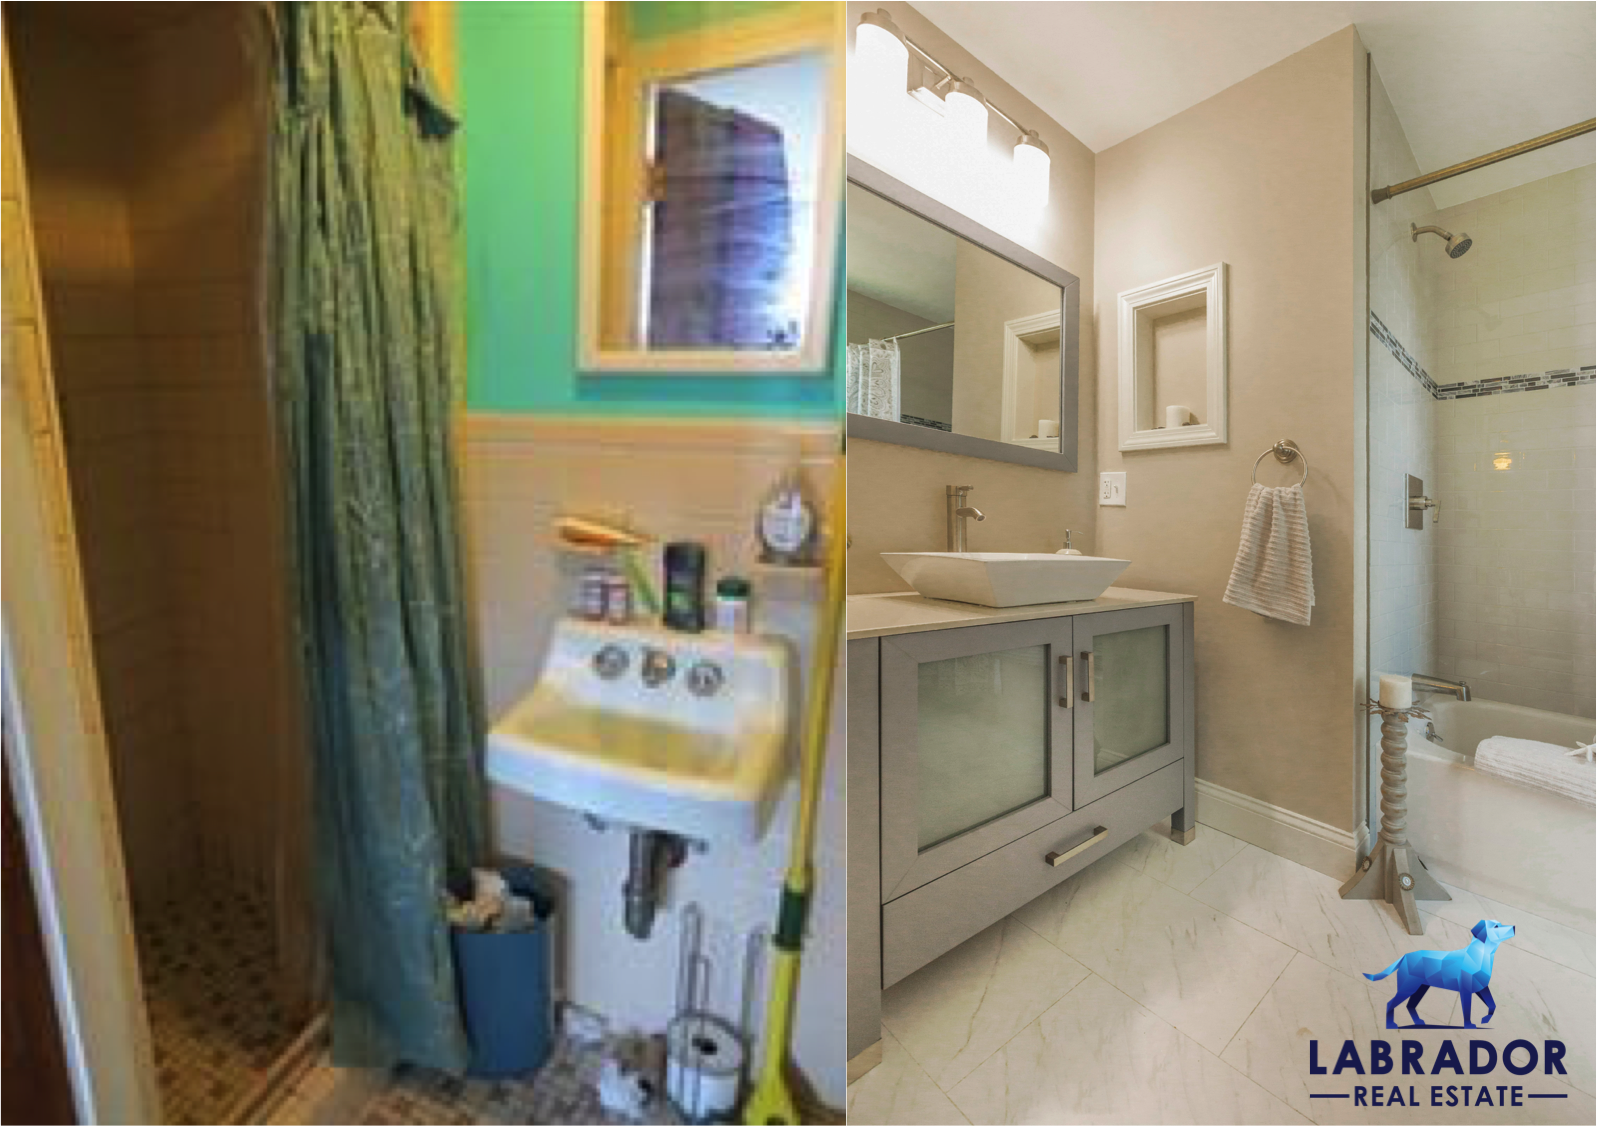 Two small bathrooms turned into a master bathroom and en-suite